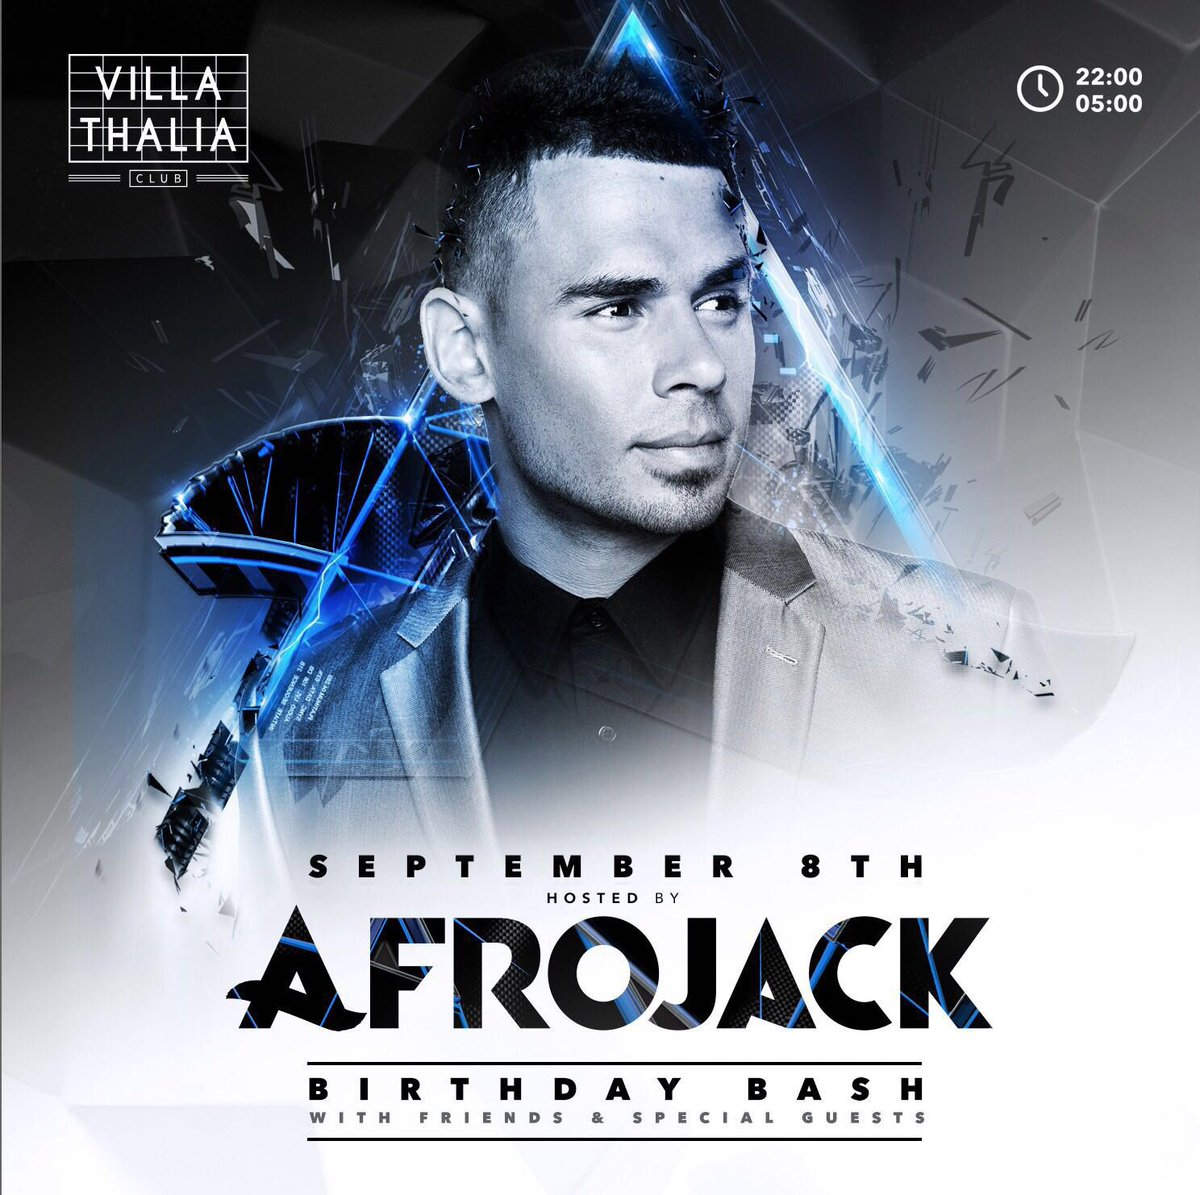 Catch me behind the decks at @villathalia31 tomorrow for @afrojack's Bday Bash! #djirwan #afrojack #birthday https://t.co/Apy0quvjRE